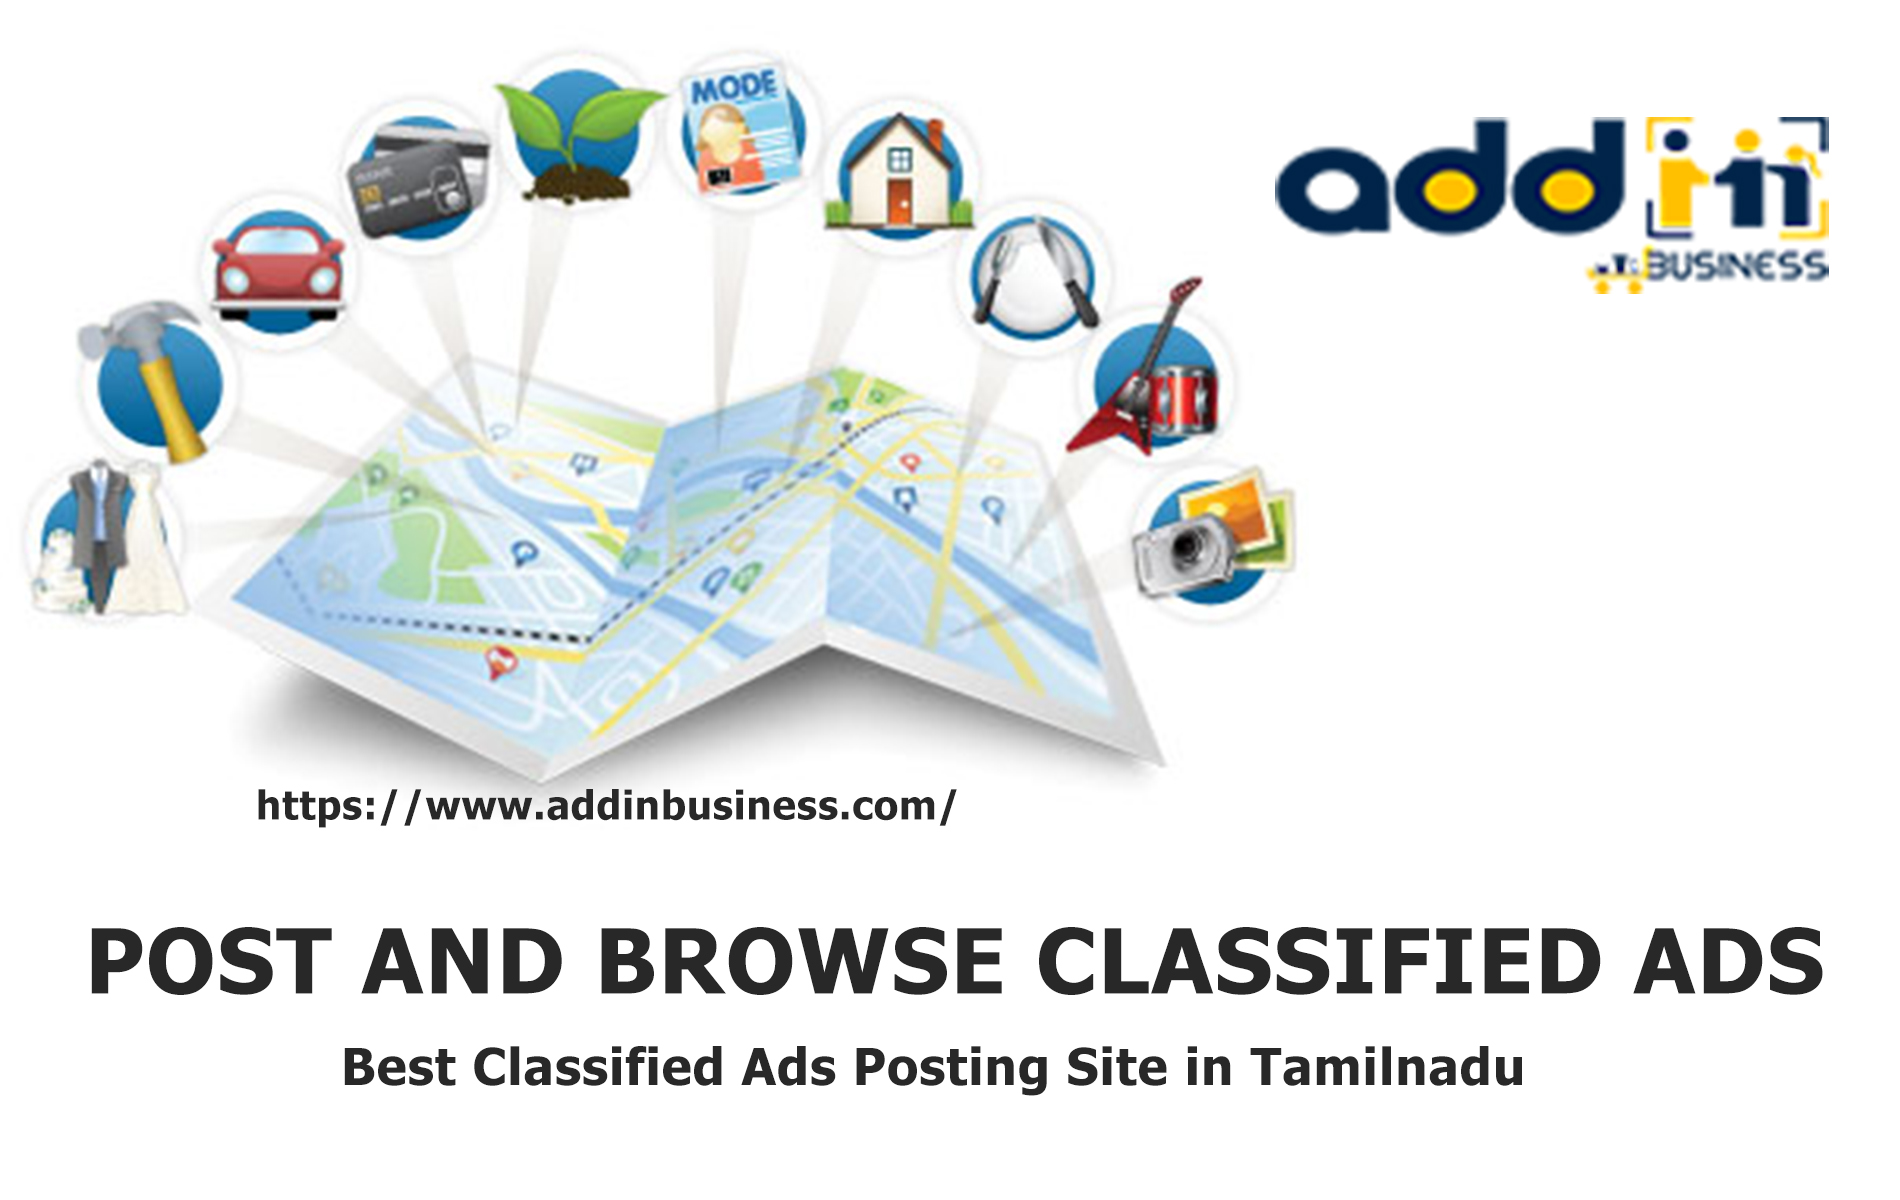 we are best online ads posting site help to discover your business on more online customers browse classified ads in real estate pets education